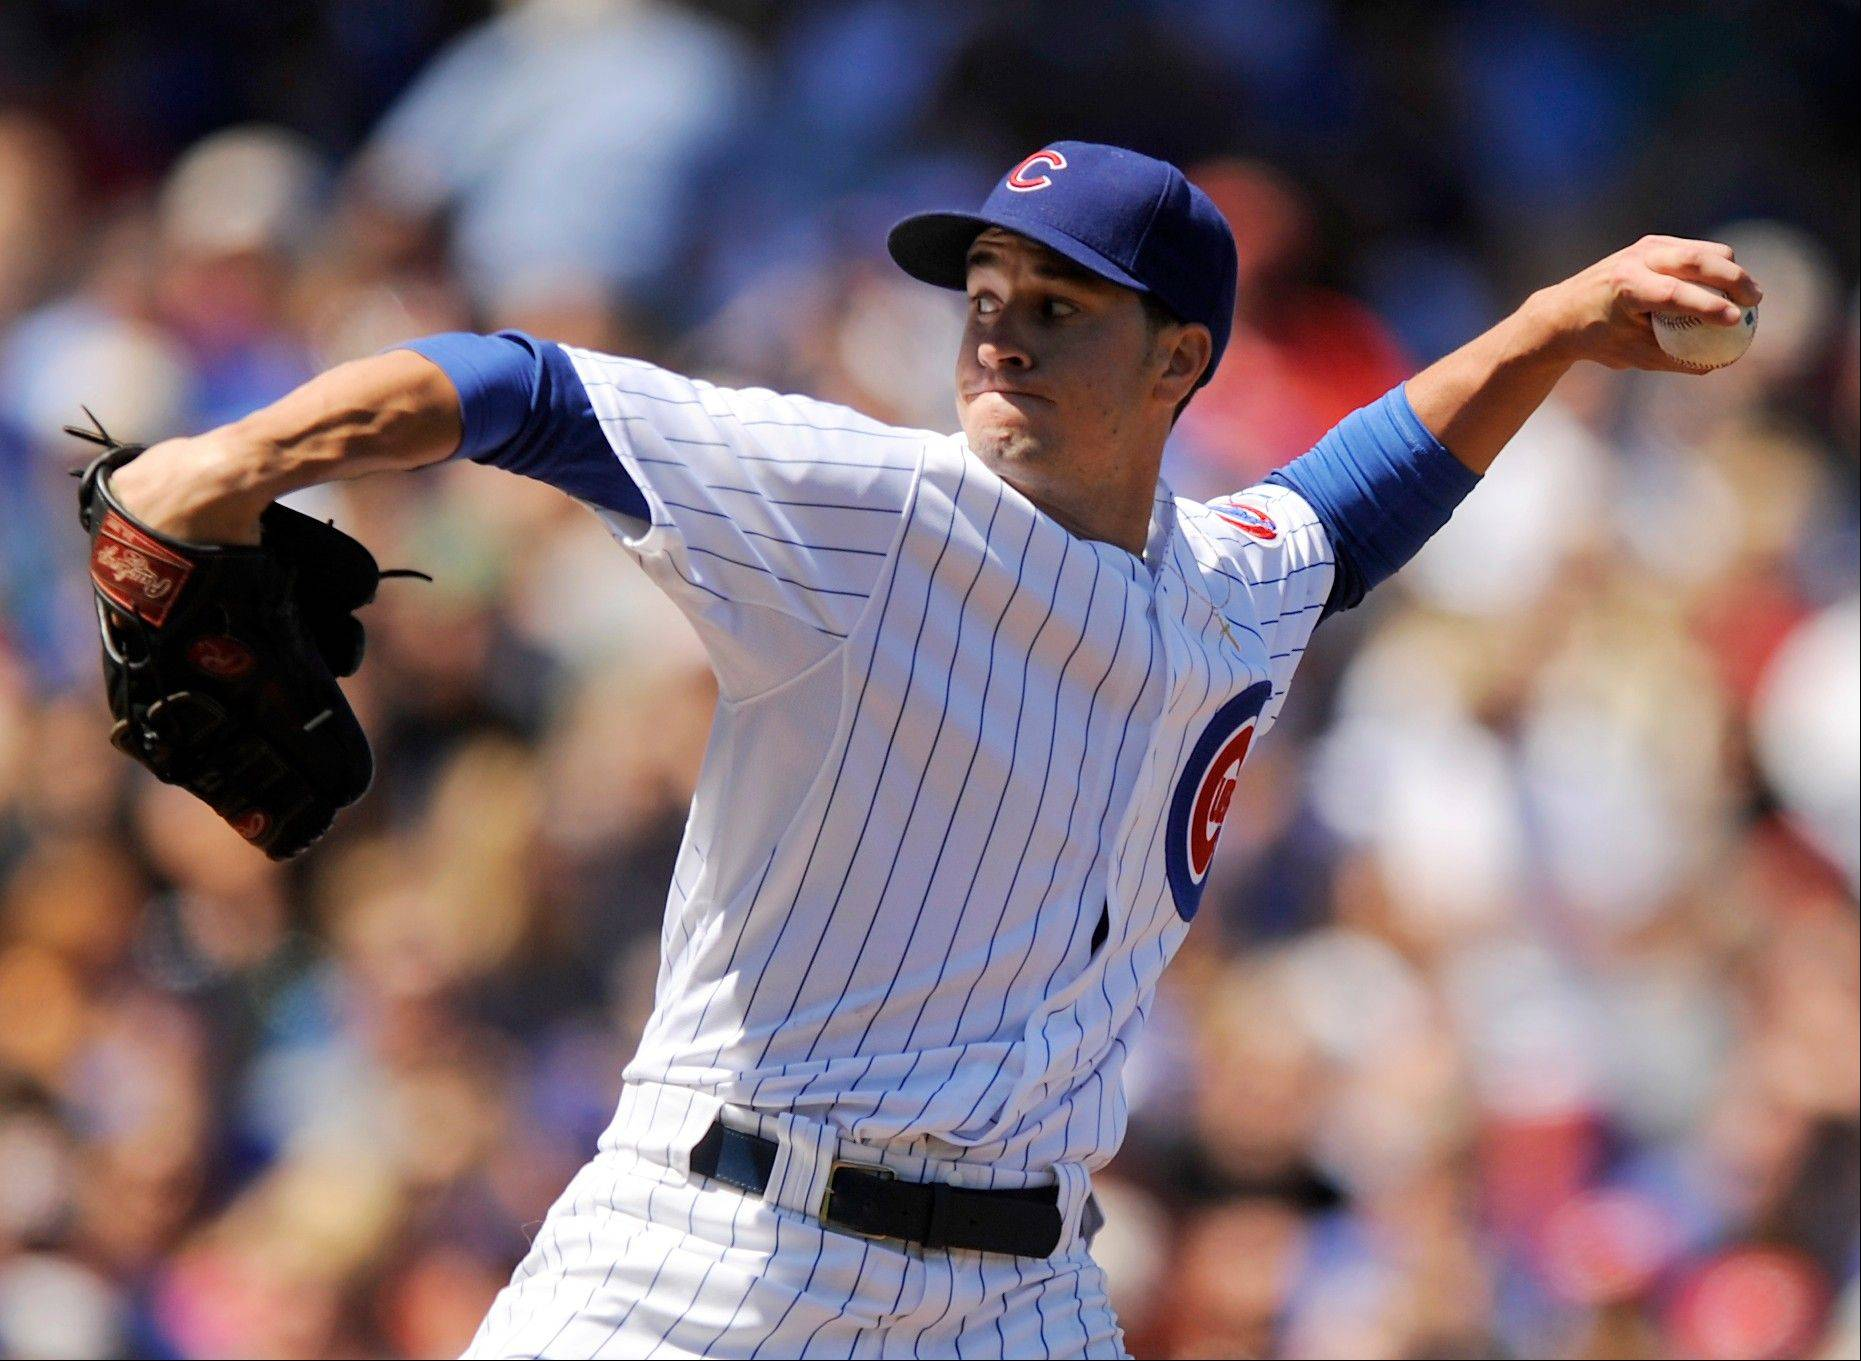 Cubs starter Chris Rusin delivers a pitch Wednesday during the first inning against the Cincinnati Reds at Wrigley Field.